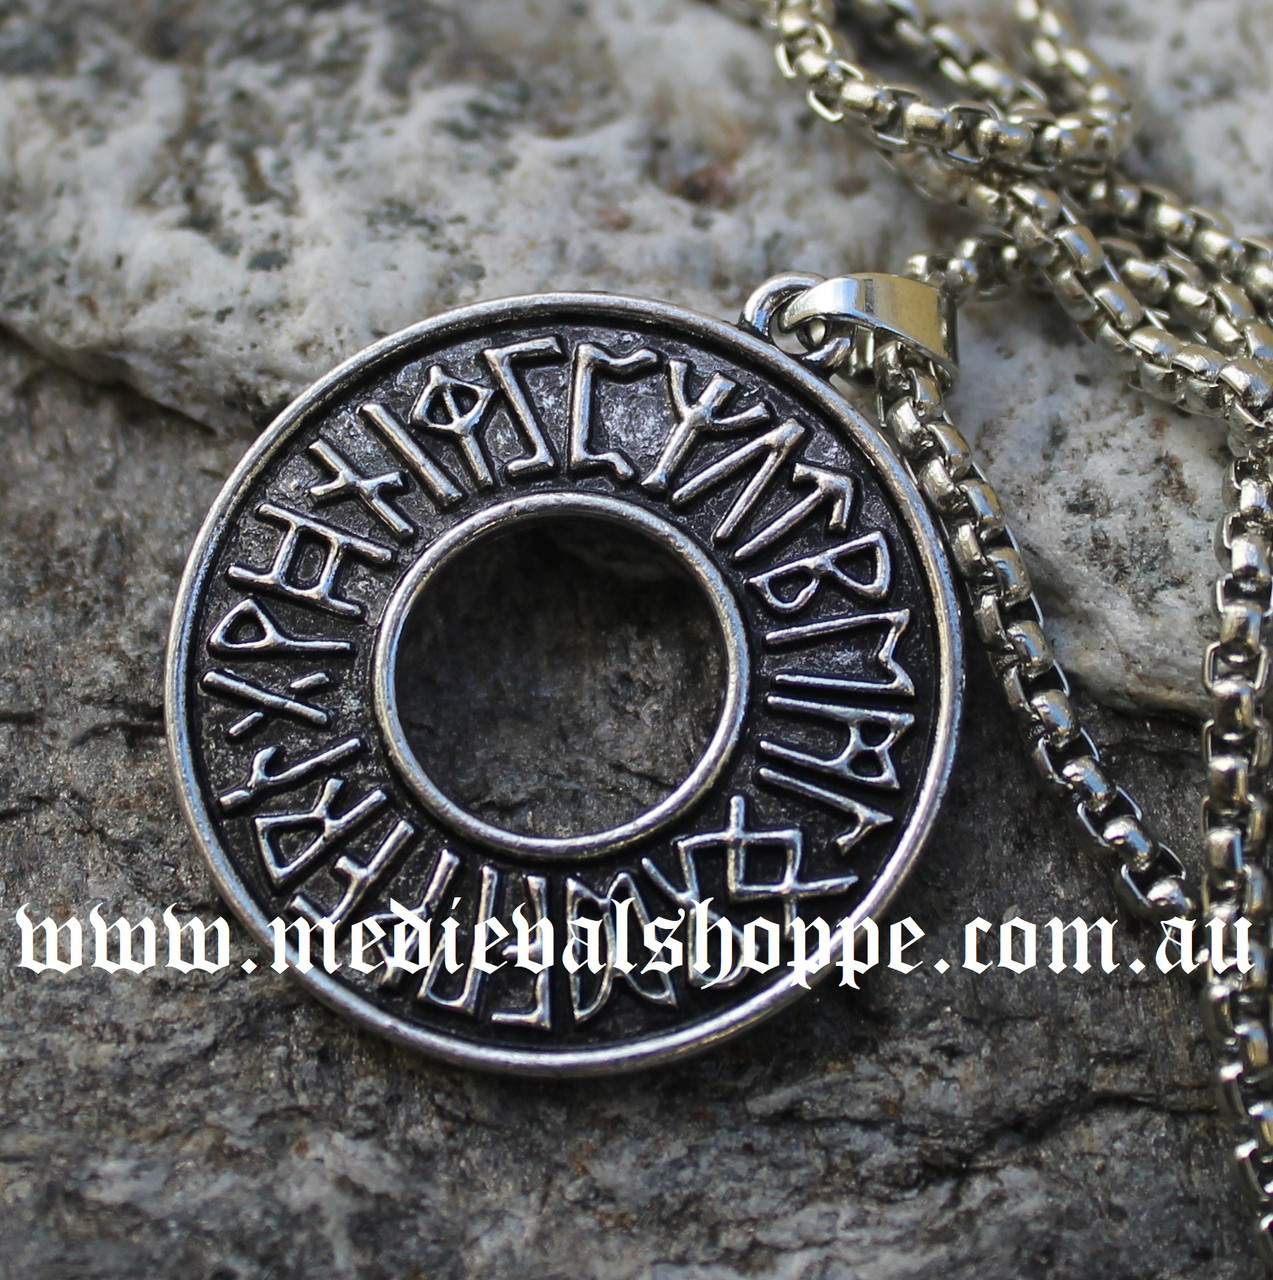 cloverpost mchpjm who m shop circle what wear necklace medallion